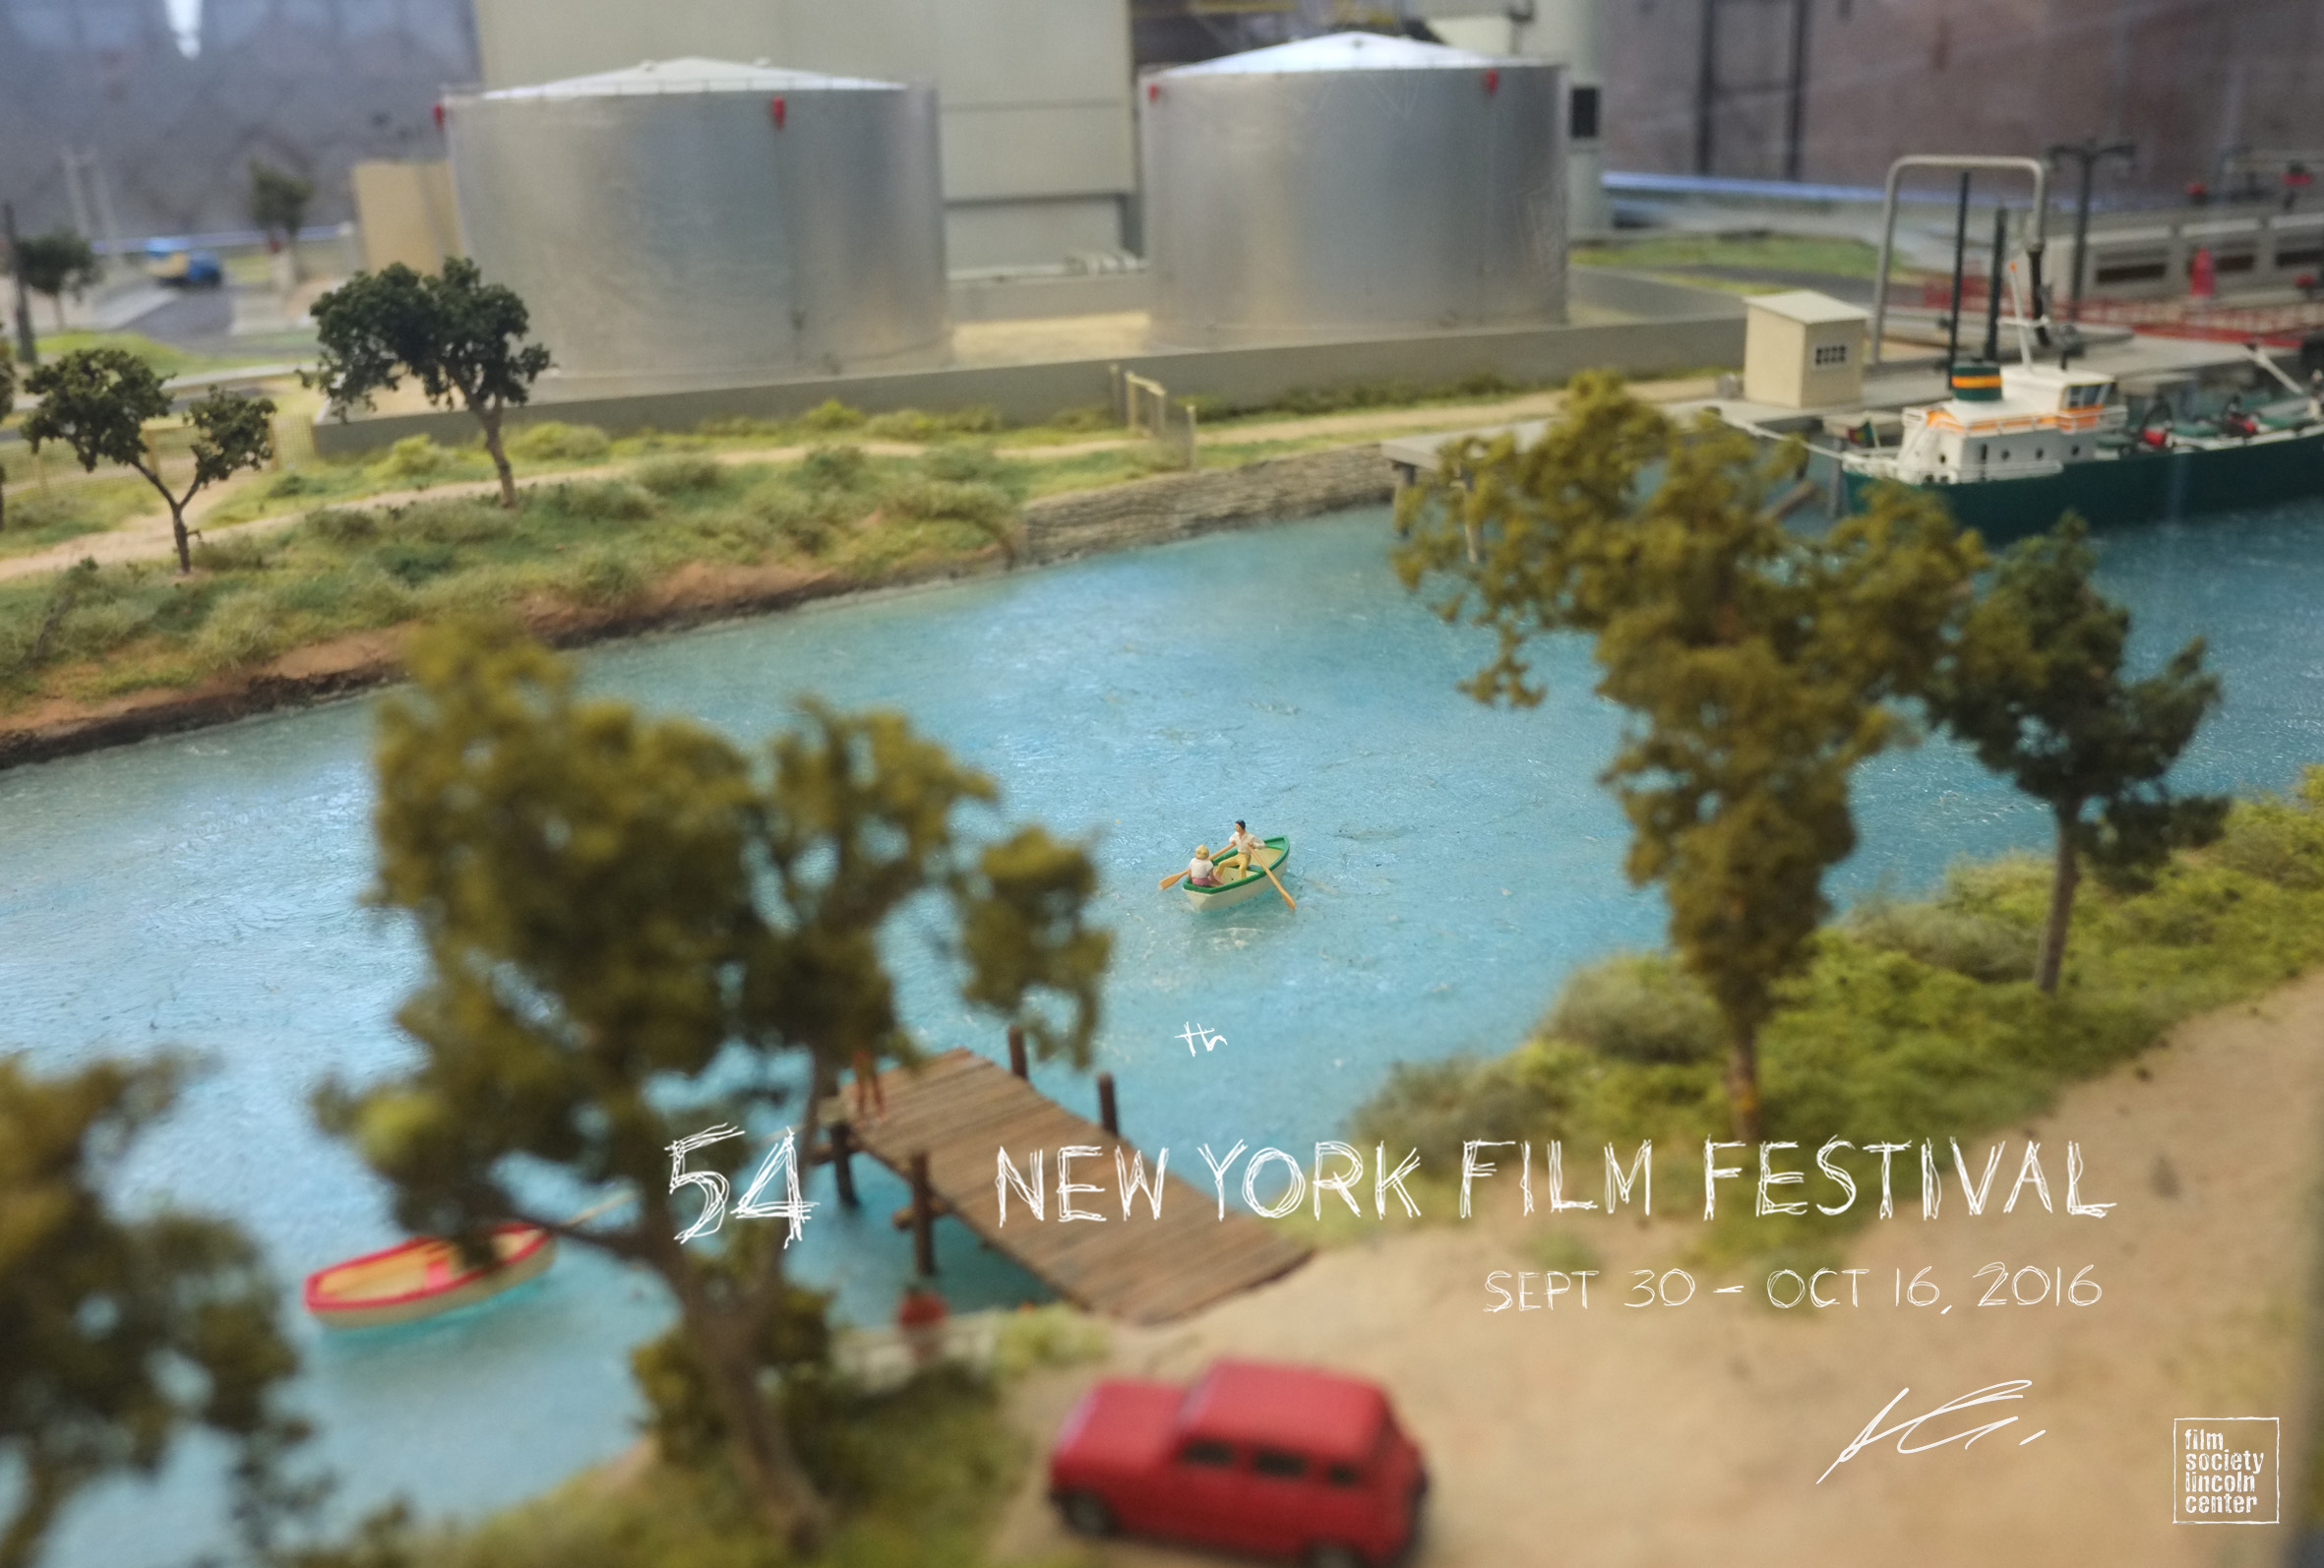 MAIN SLATE SELECTIONS FOR THE 54th NEW YORK FILM FESTIVAL